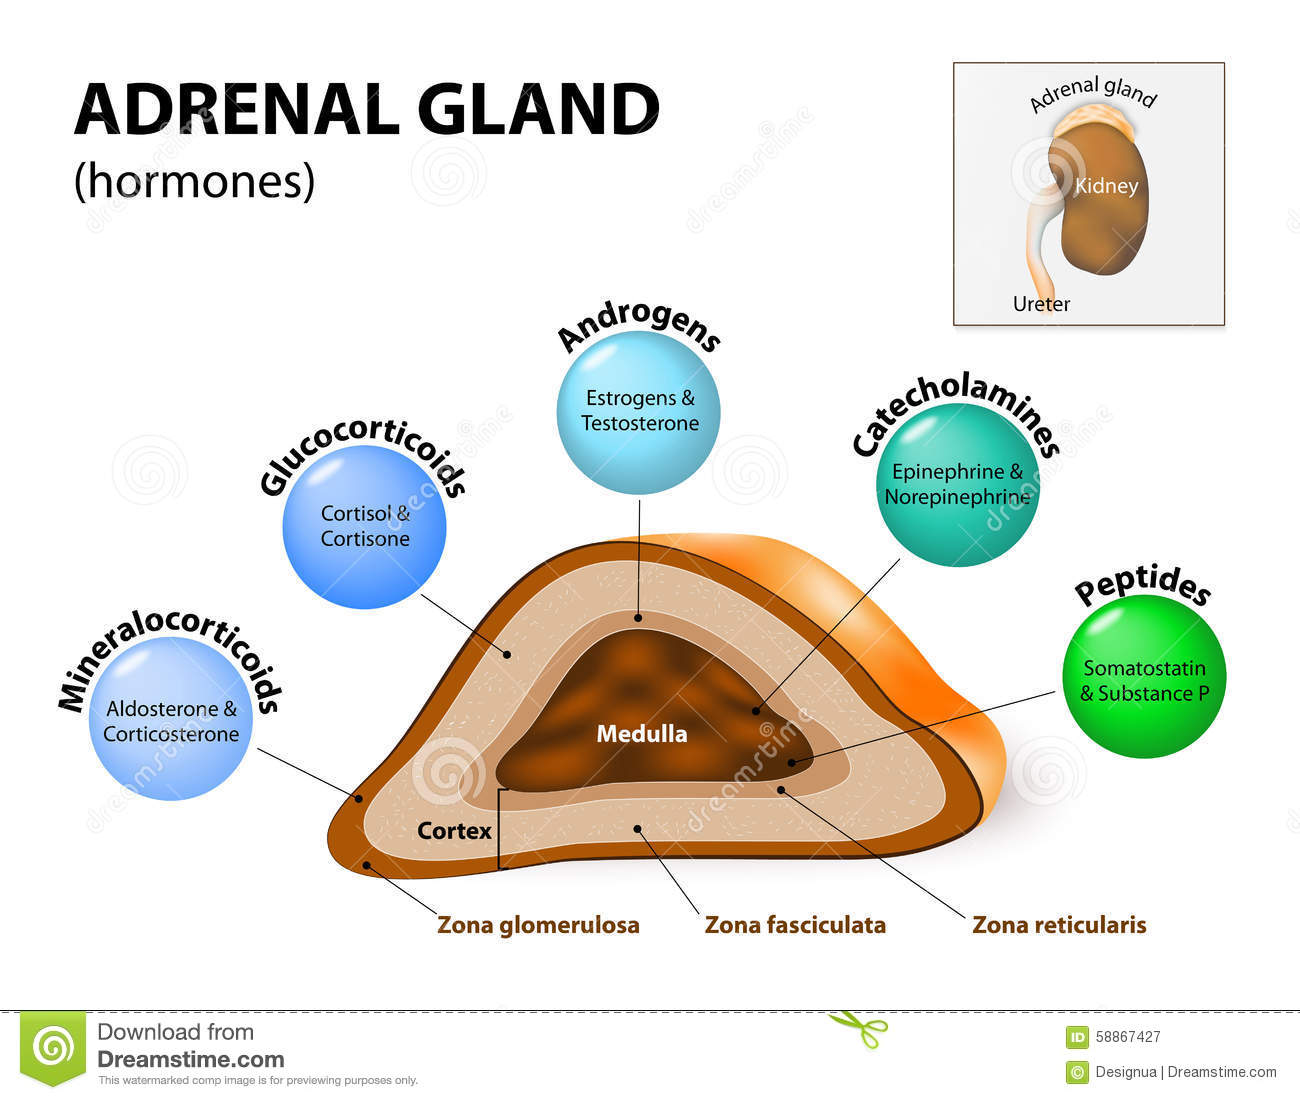 does the adrenal medulla produce steroid hormones